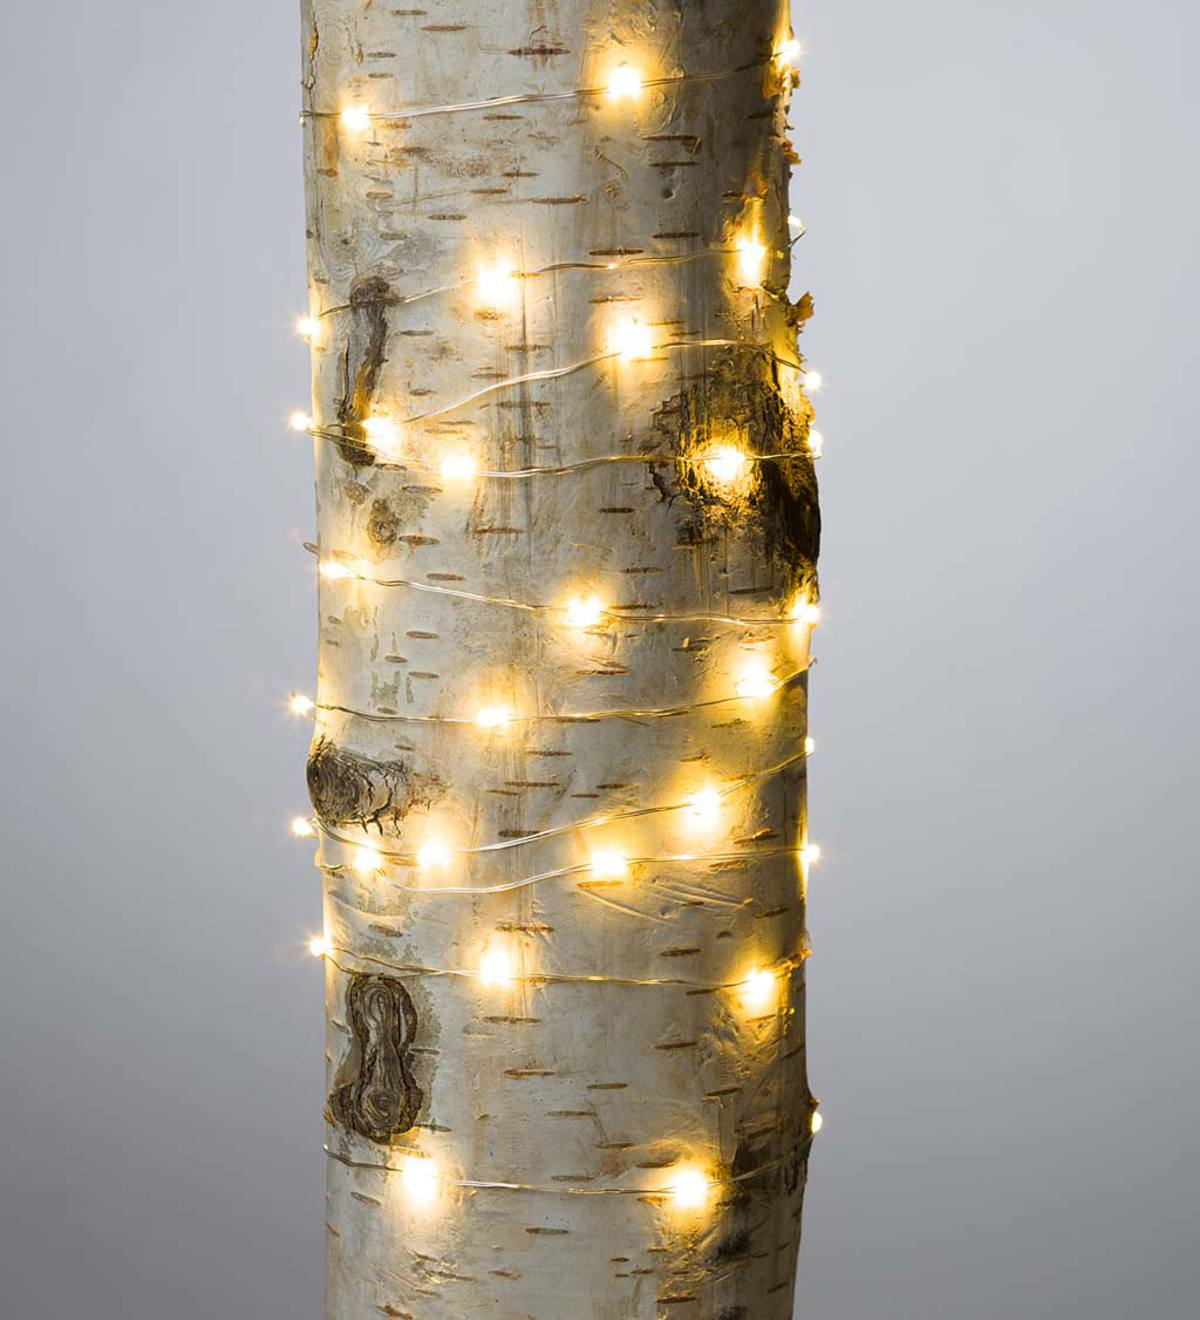 Firefly String Lights, 60 Warm White LEDs on Silver Wire, Battery Operated, 9'10